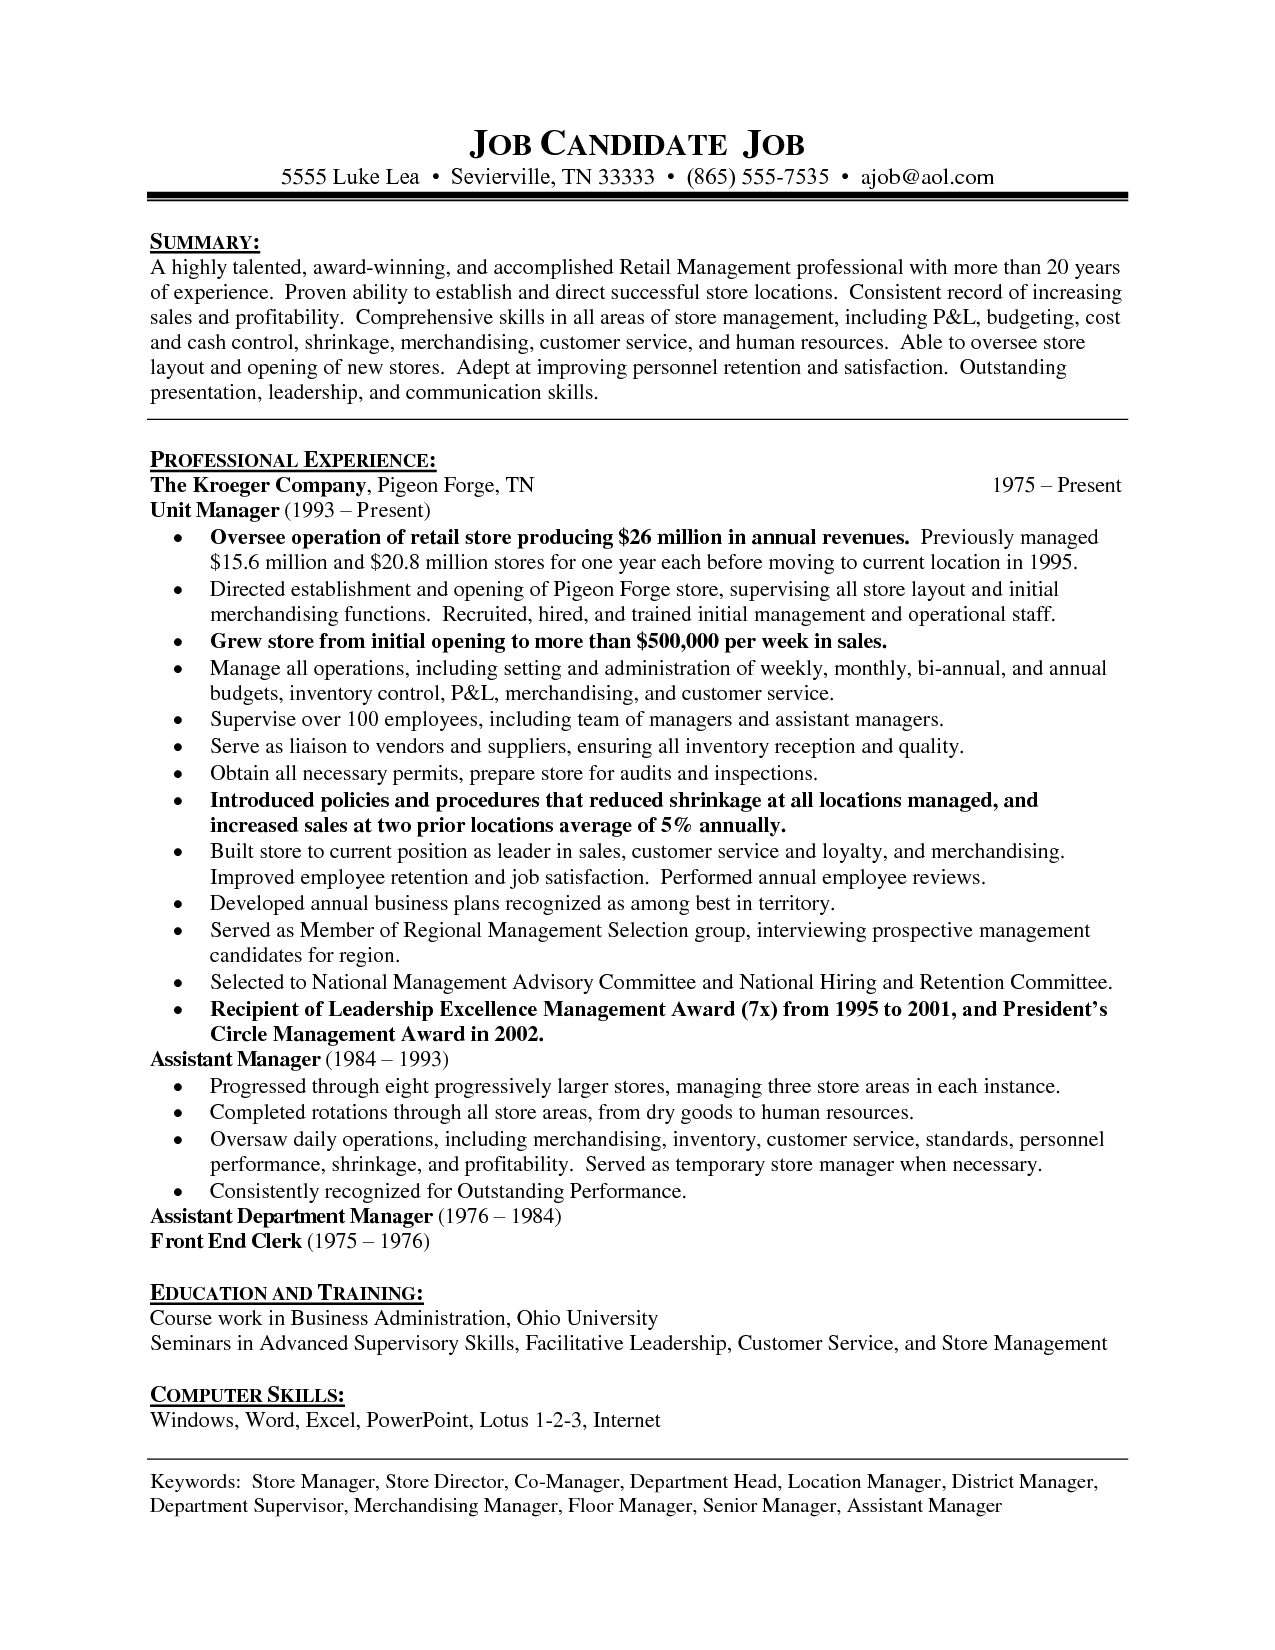 Assistant Manager Resume Format Unique Retail Department Store Manager Resume  Vision Specialist  Good .